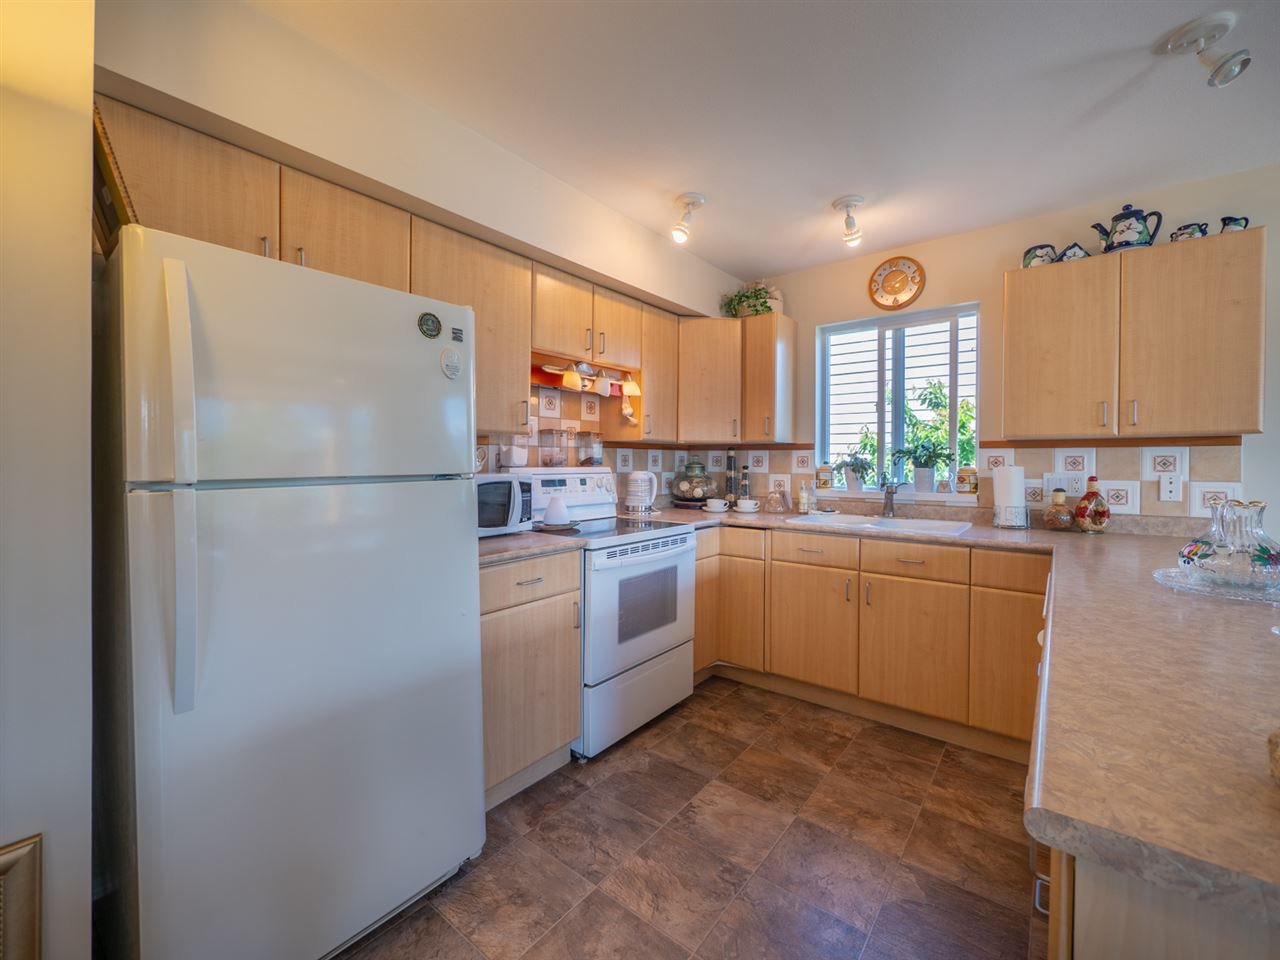 """Photo 5: Photos: 6148 POISE ISLAND Drive in Sechelt: Sechelt District House for sale in """"POISE ISLAND"""" (Sunshine Coast)  : MLS®# R2426642"""